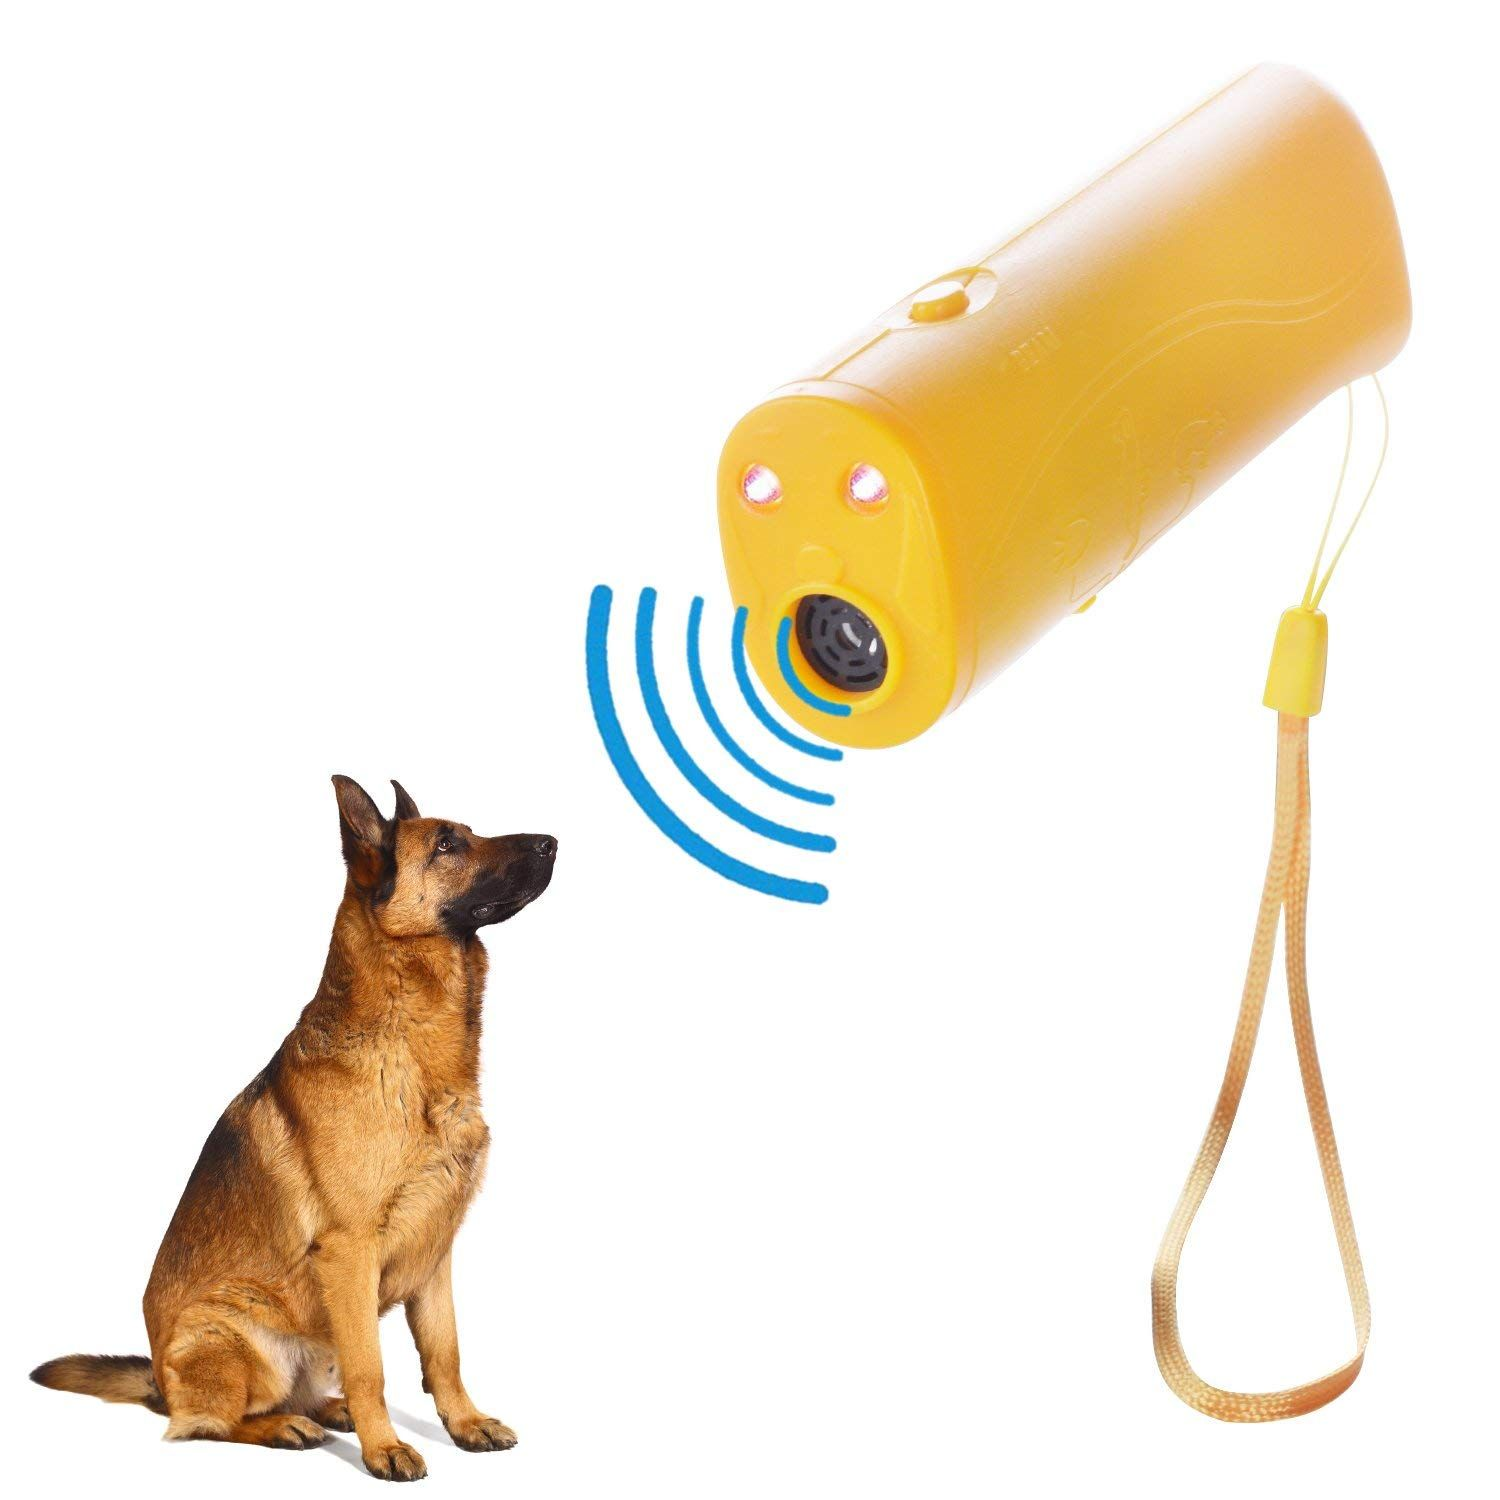 Letcome Led Ultrasonic Dog Repeller And Trainer Device 3 In 1 Anti